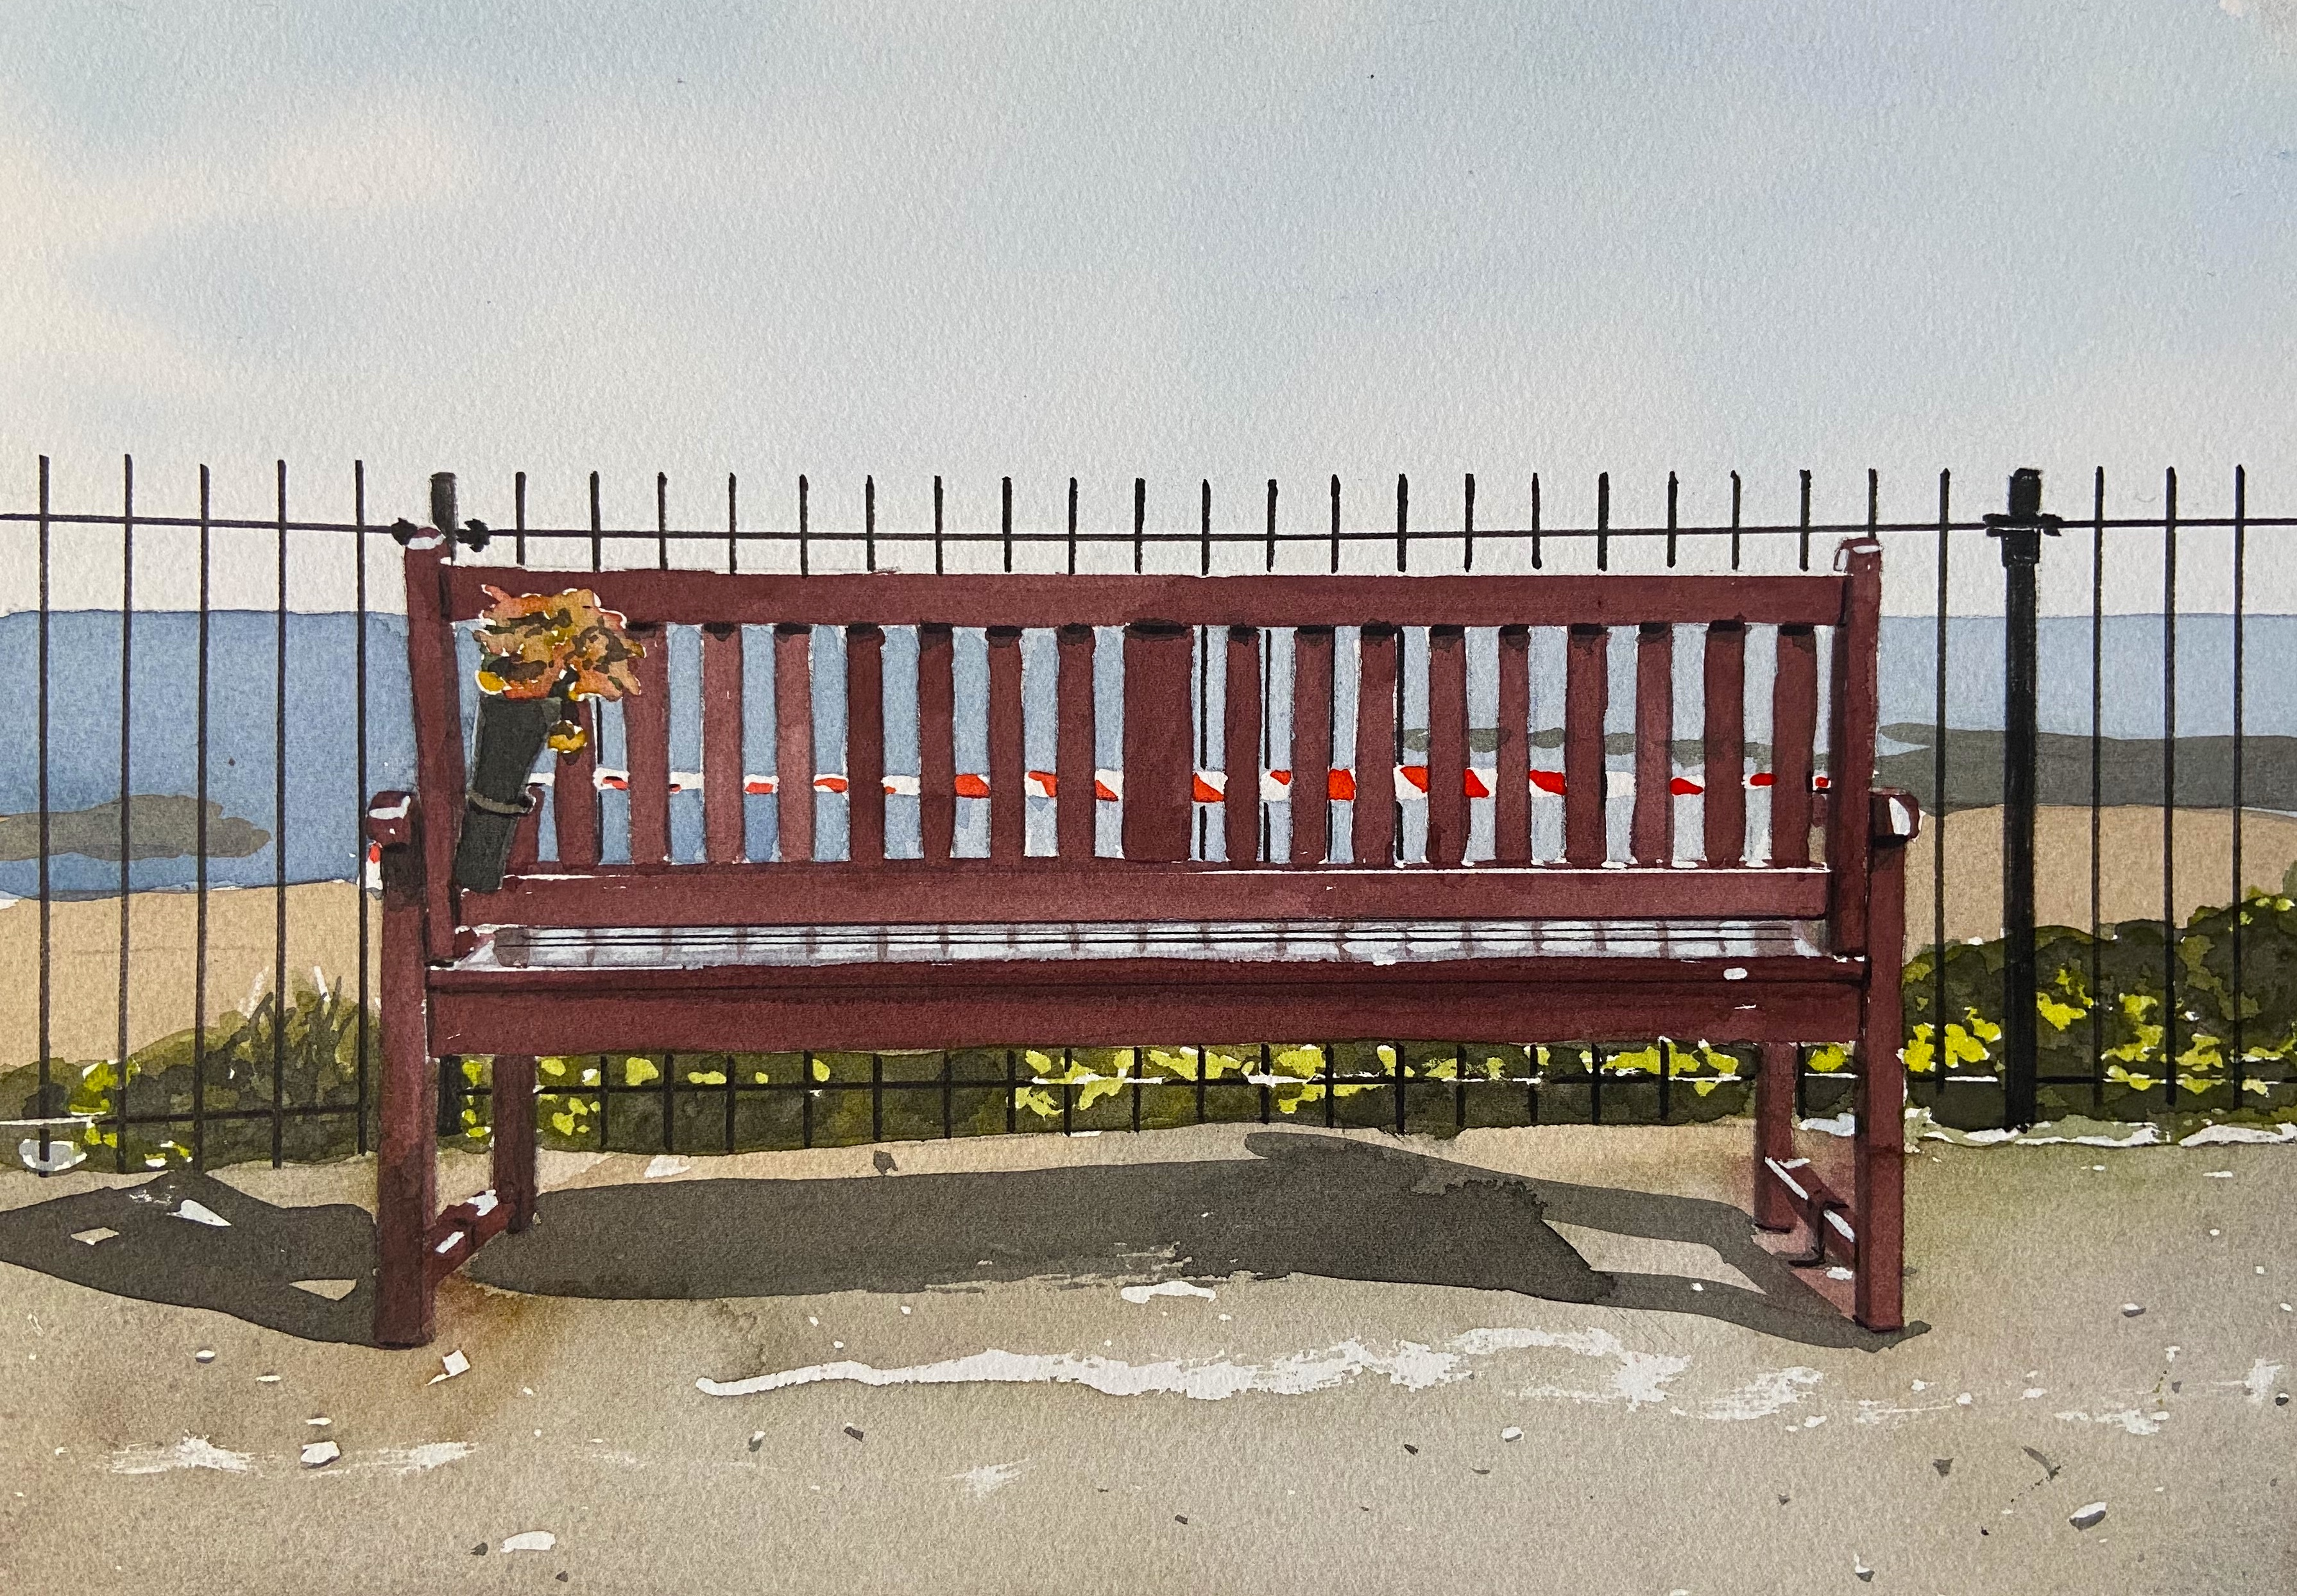 Untitled (Bench) 4